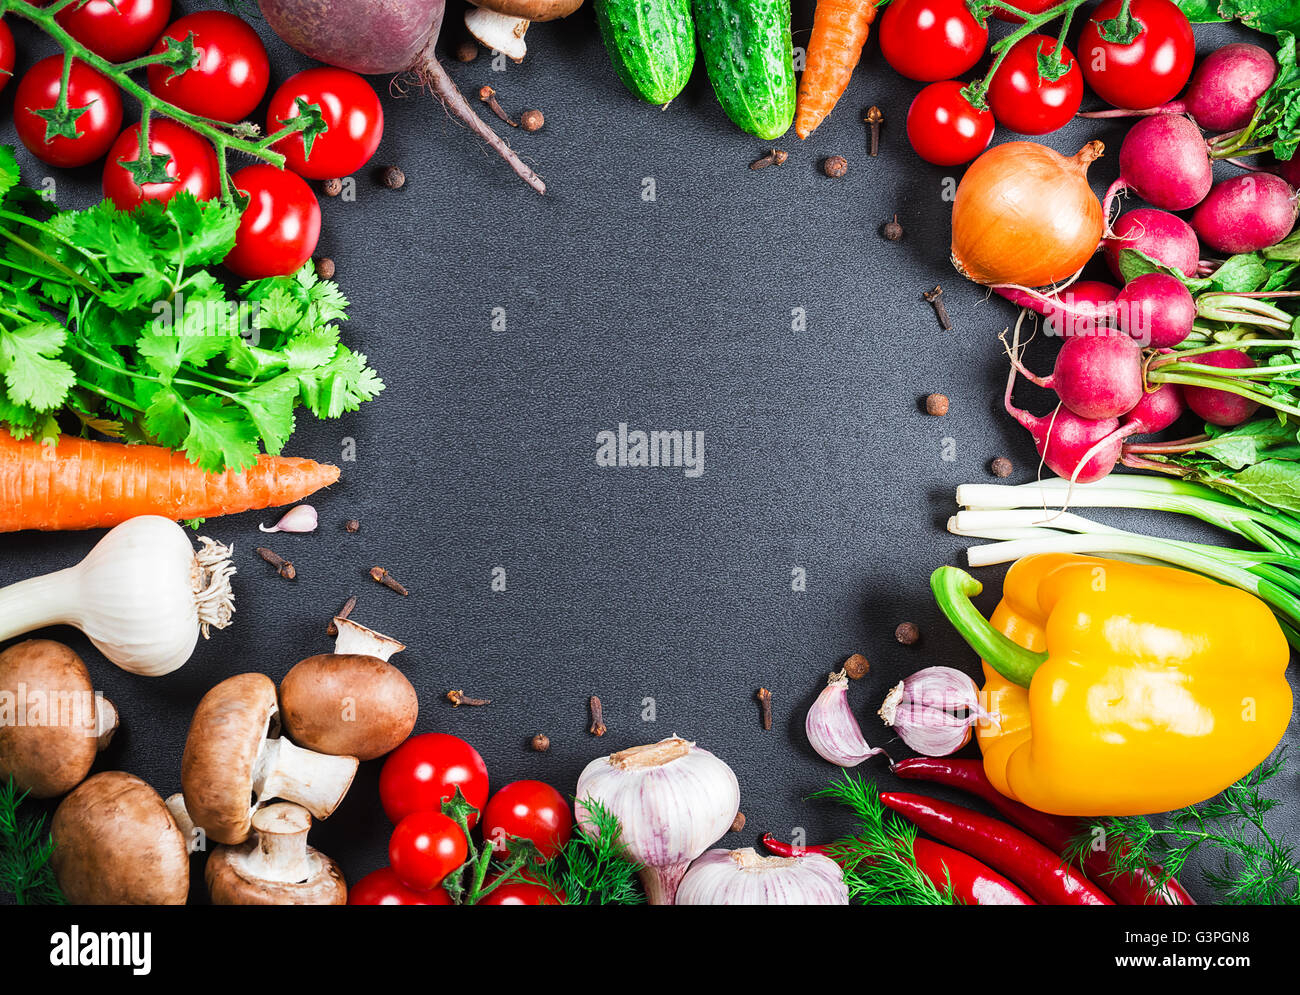 Food background studio photo of different fruits and vegetables - Beautiful Background Healthy Organic Eating Studio Photography The Frame Of Different Vegetables And Mushrooms Stock